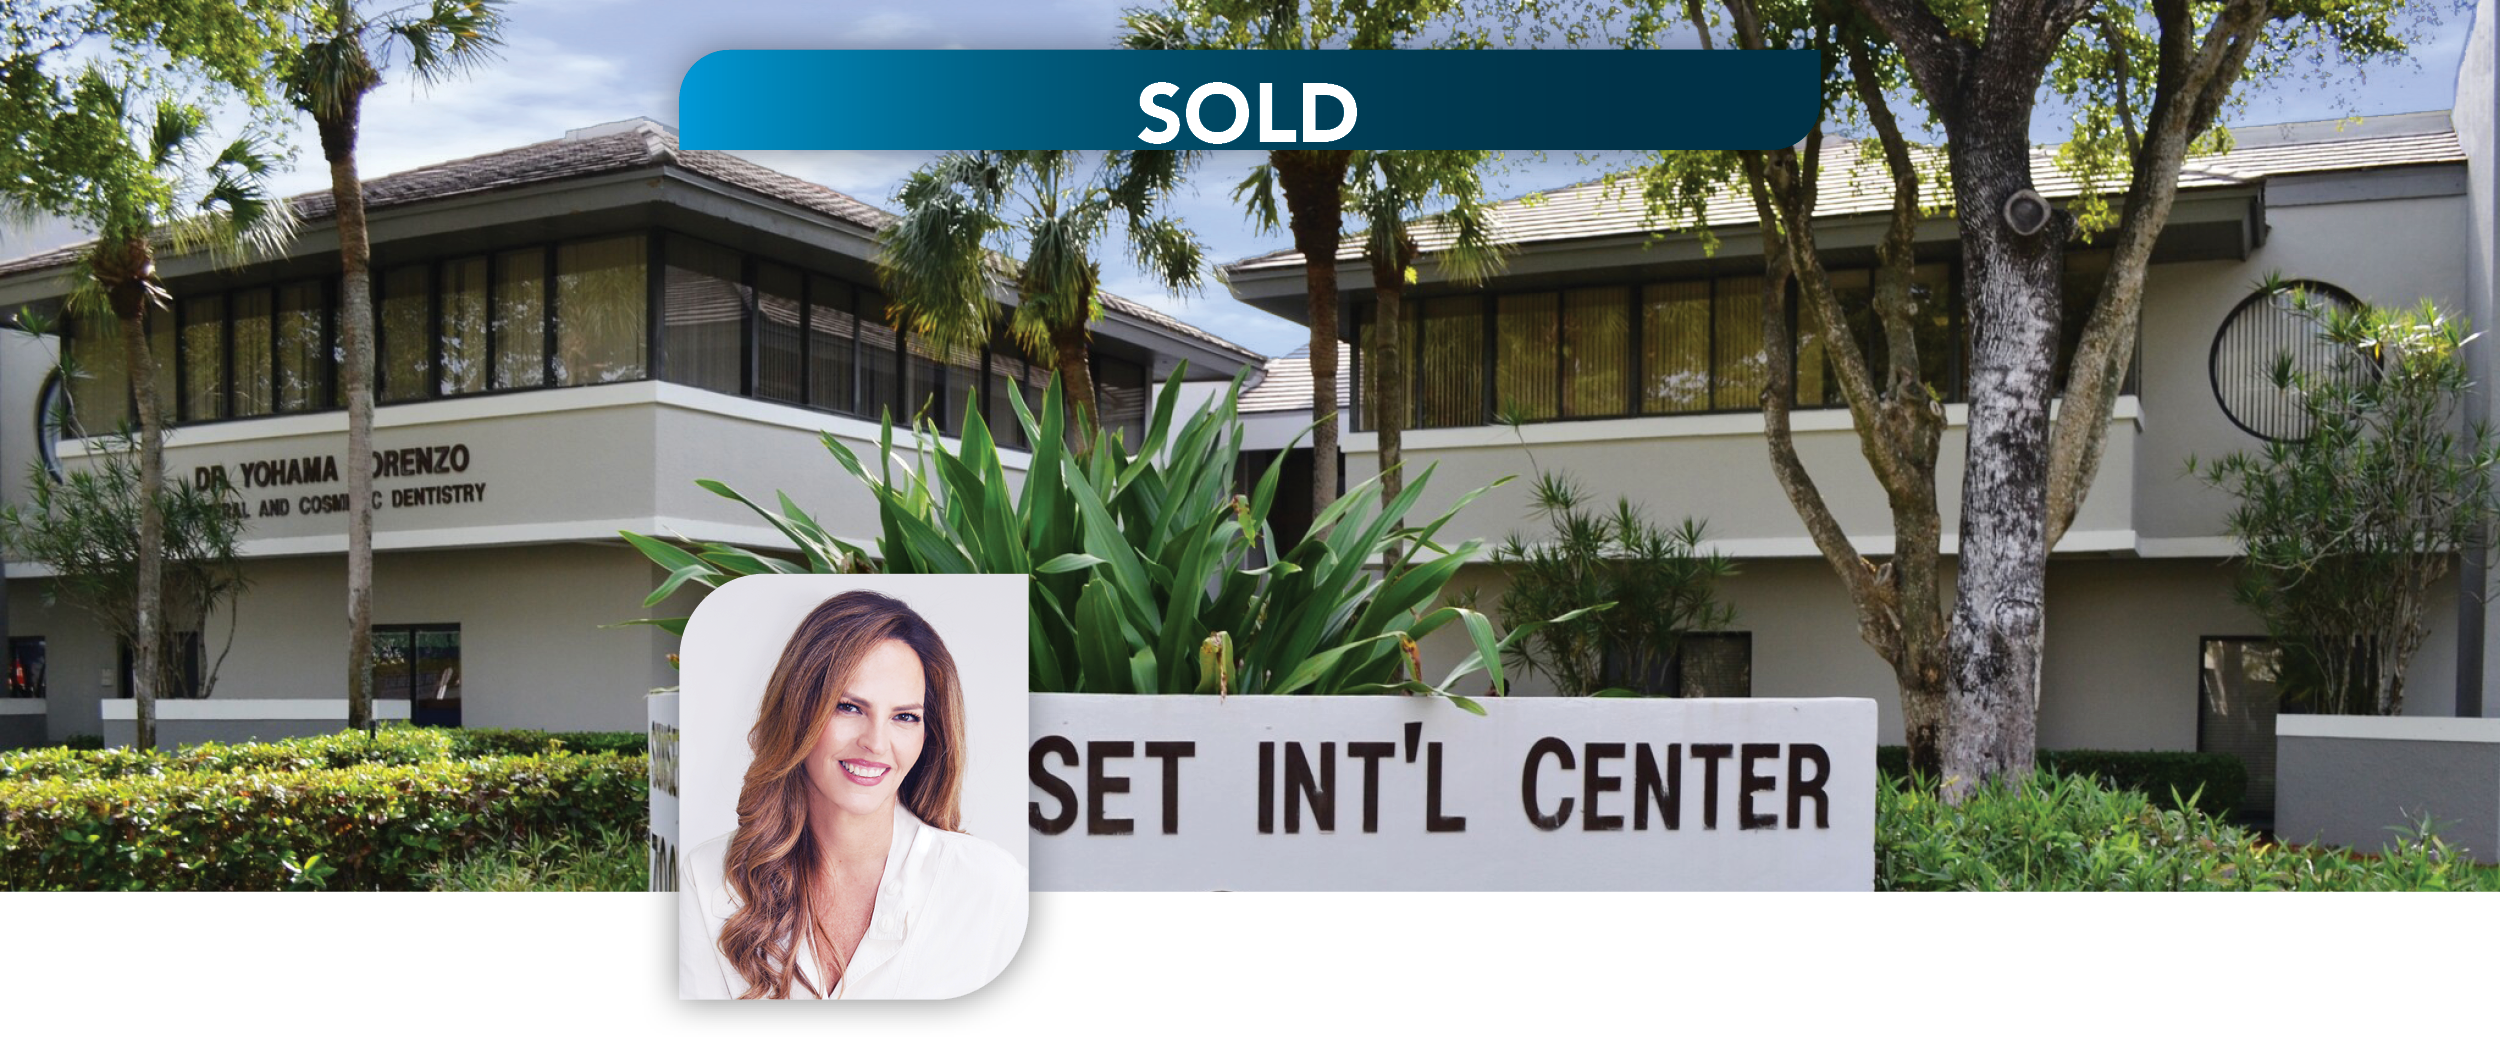 Lee & Associates South Florida Announces the Sale of Medical Office Condo at Sunset International Center